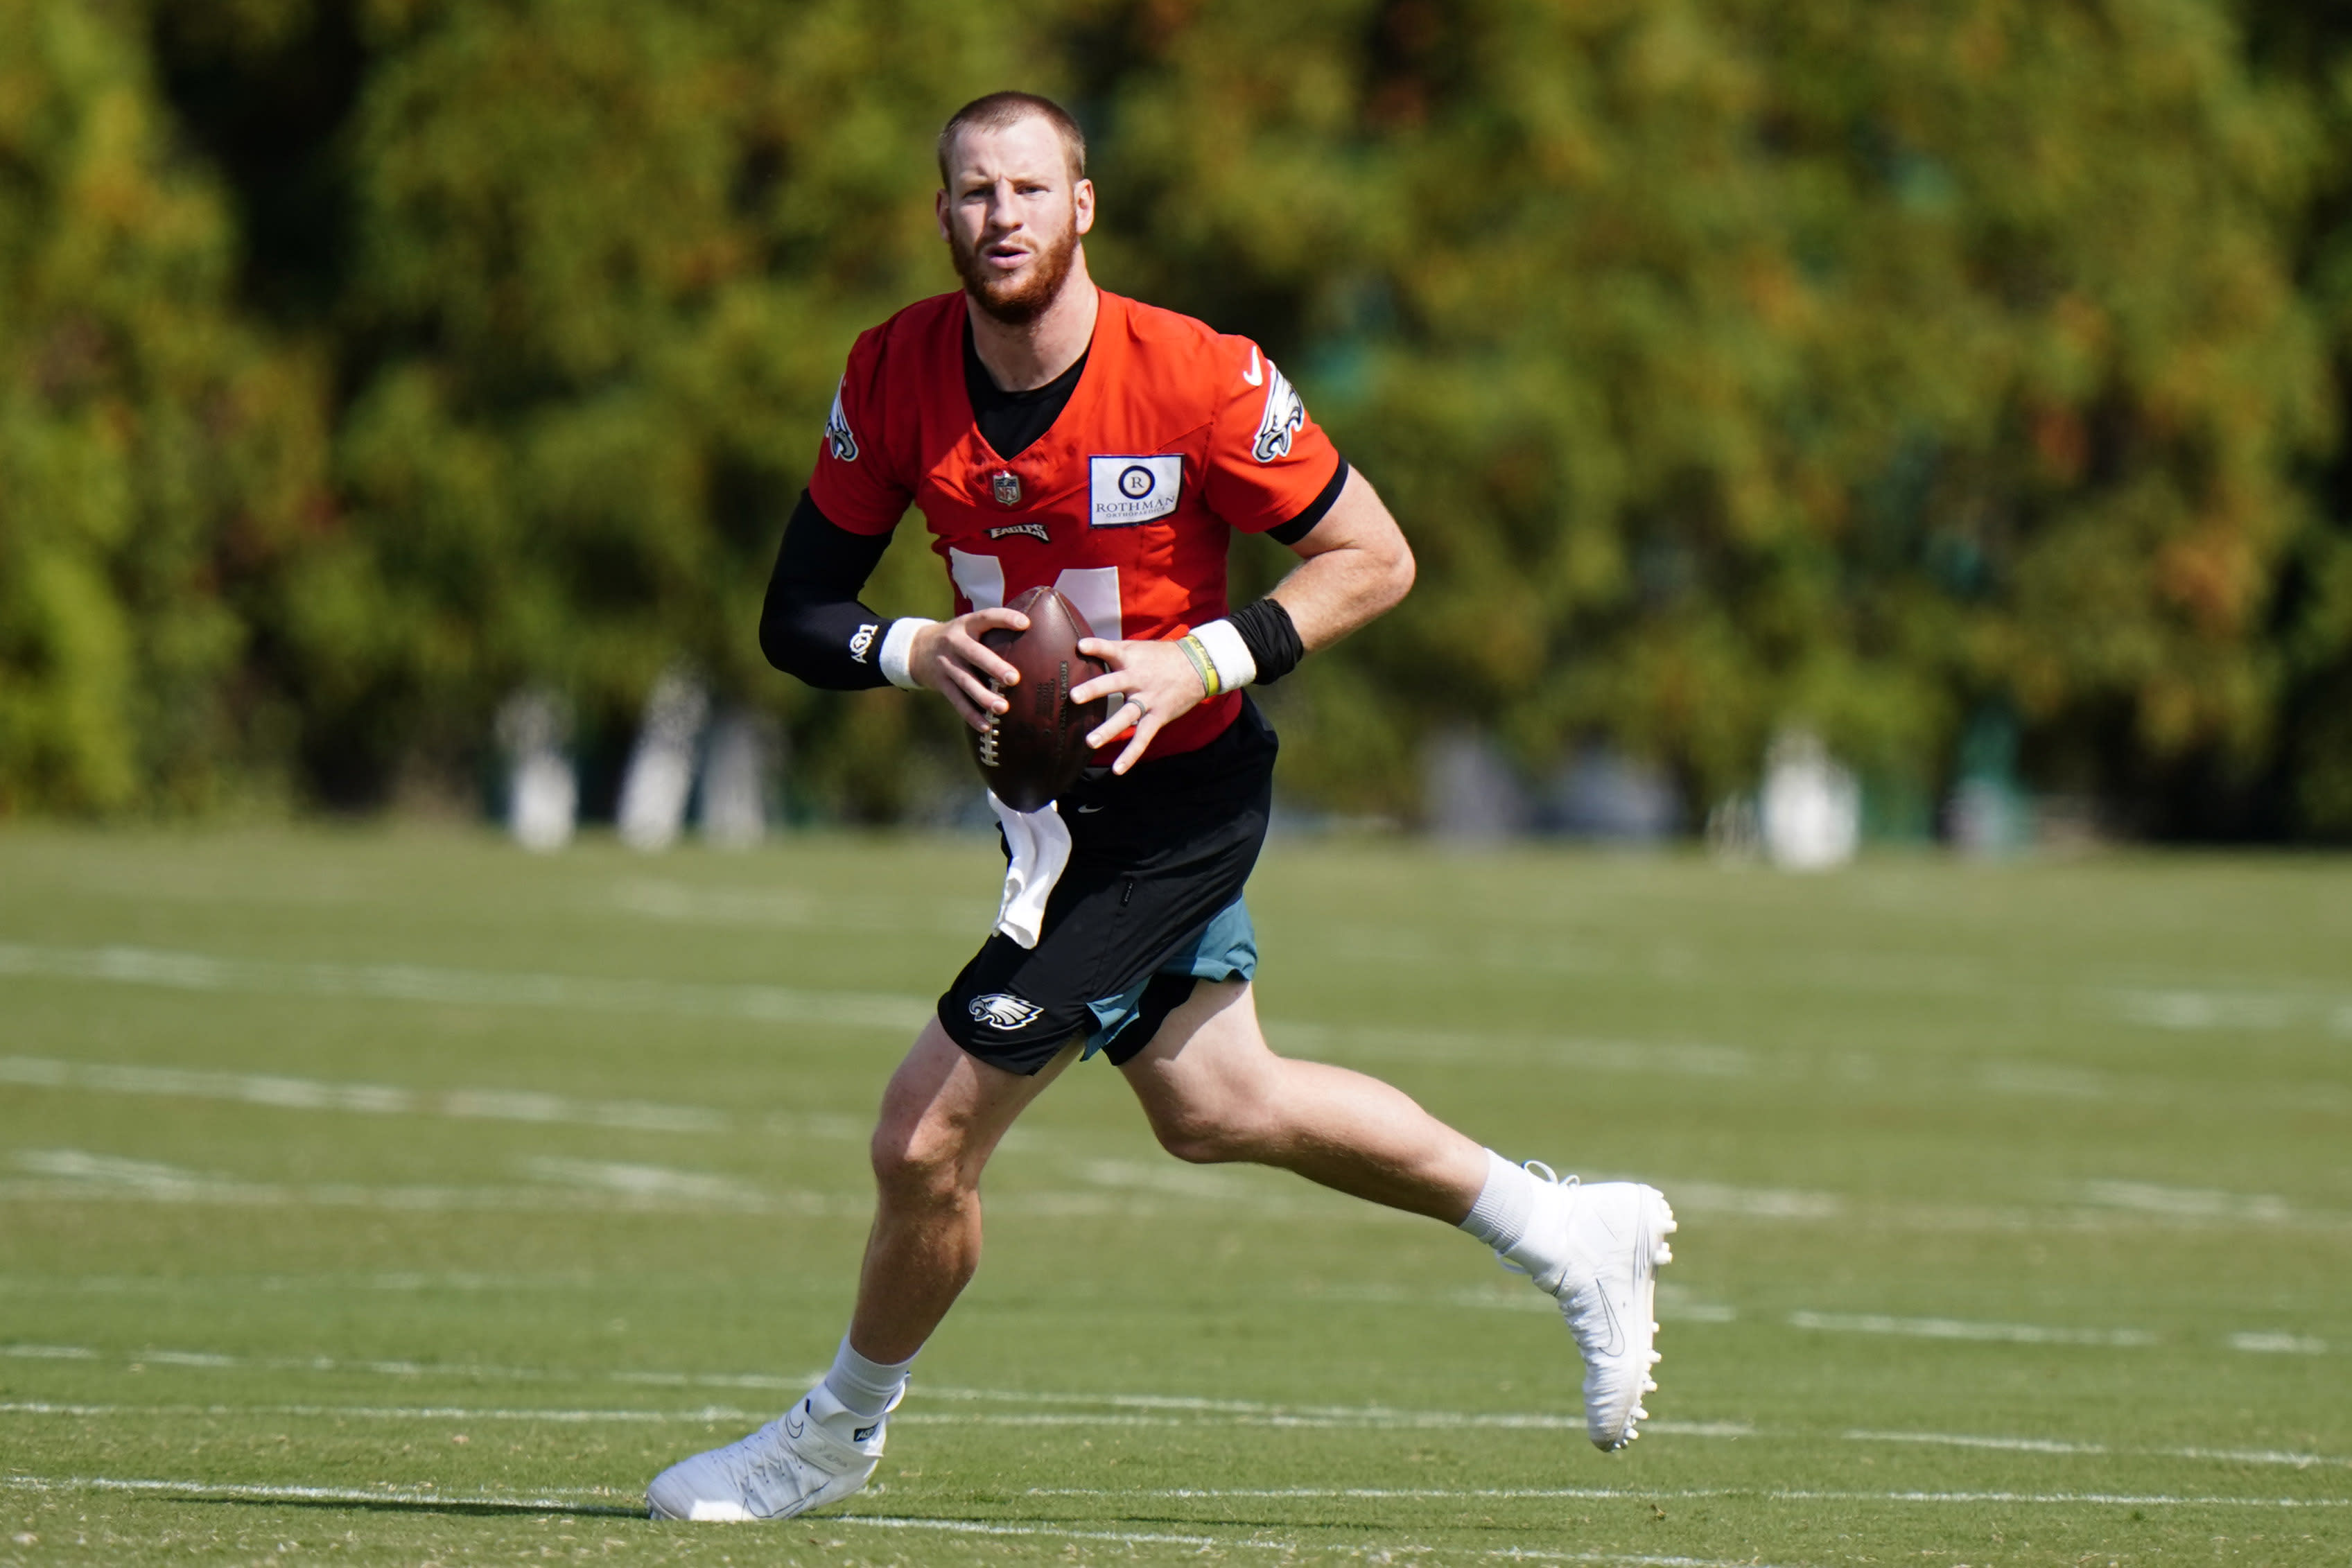 Philadelphia Eagles' Carson Wentz participates in a drill during practice at the NFL football team's training facility, Thursday, Oct. 1, 2020, in Philadelphia. (AP Photo/Matt Slocum, Pool)